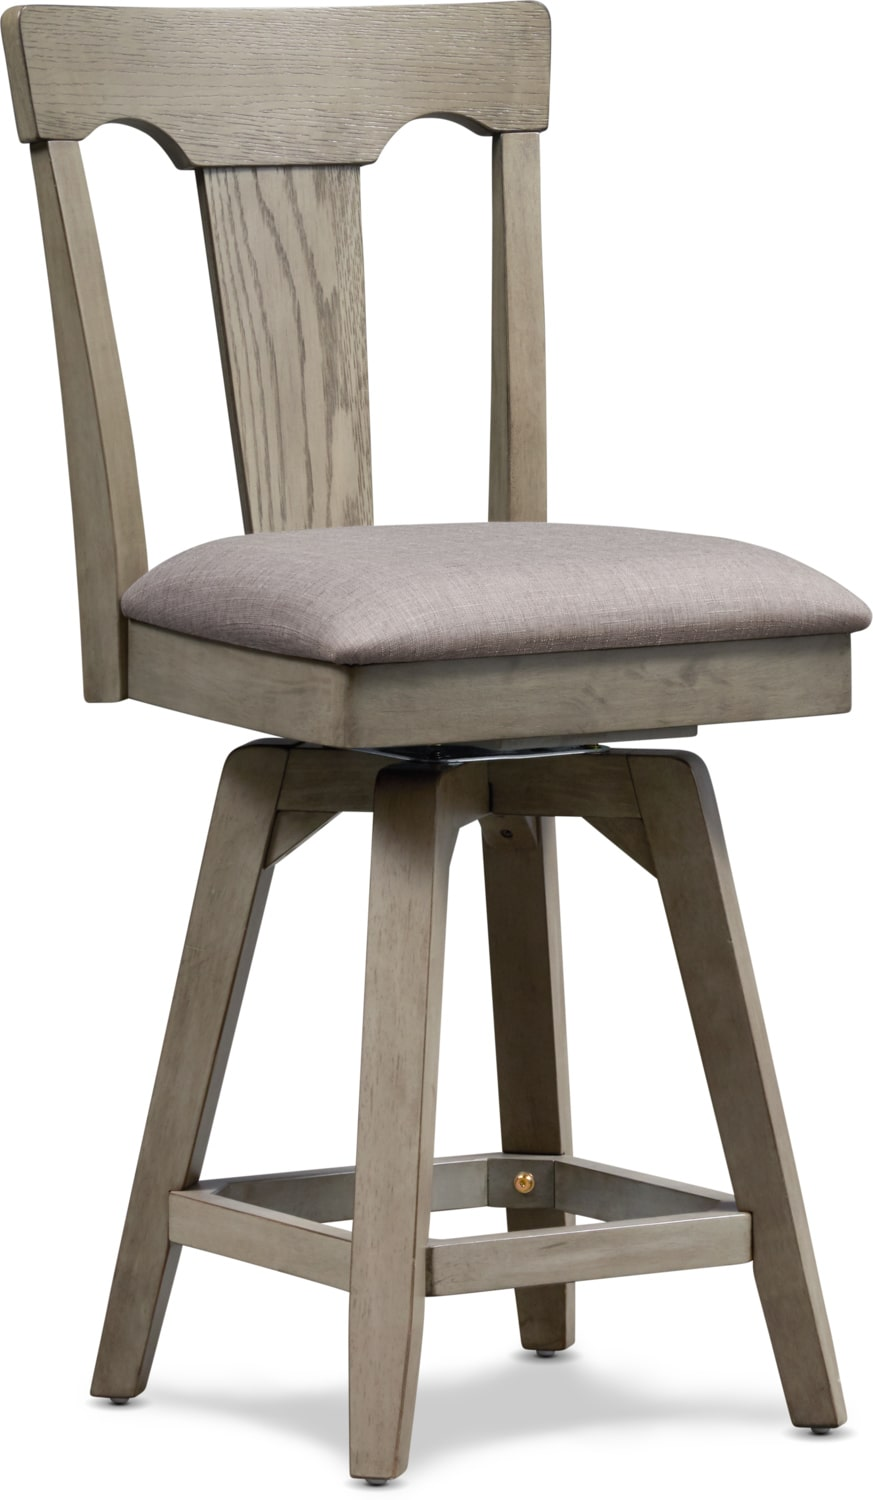 Fantastic Maxton Counter Height Stool Caraccident5 Cool Chair Designs And Ideas Caraccident5Info